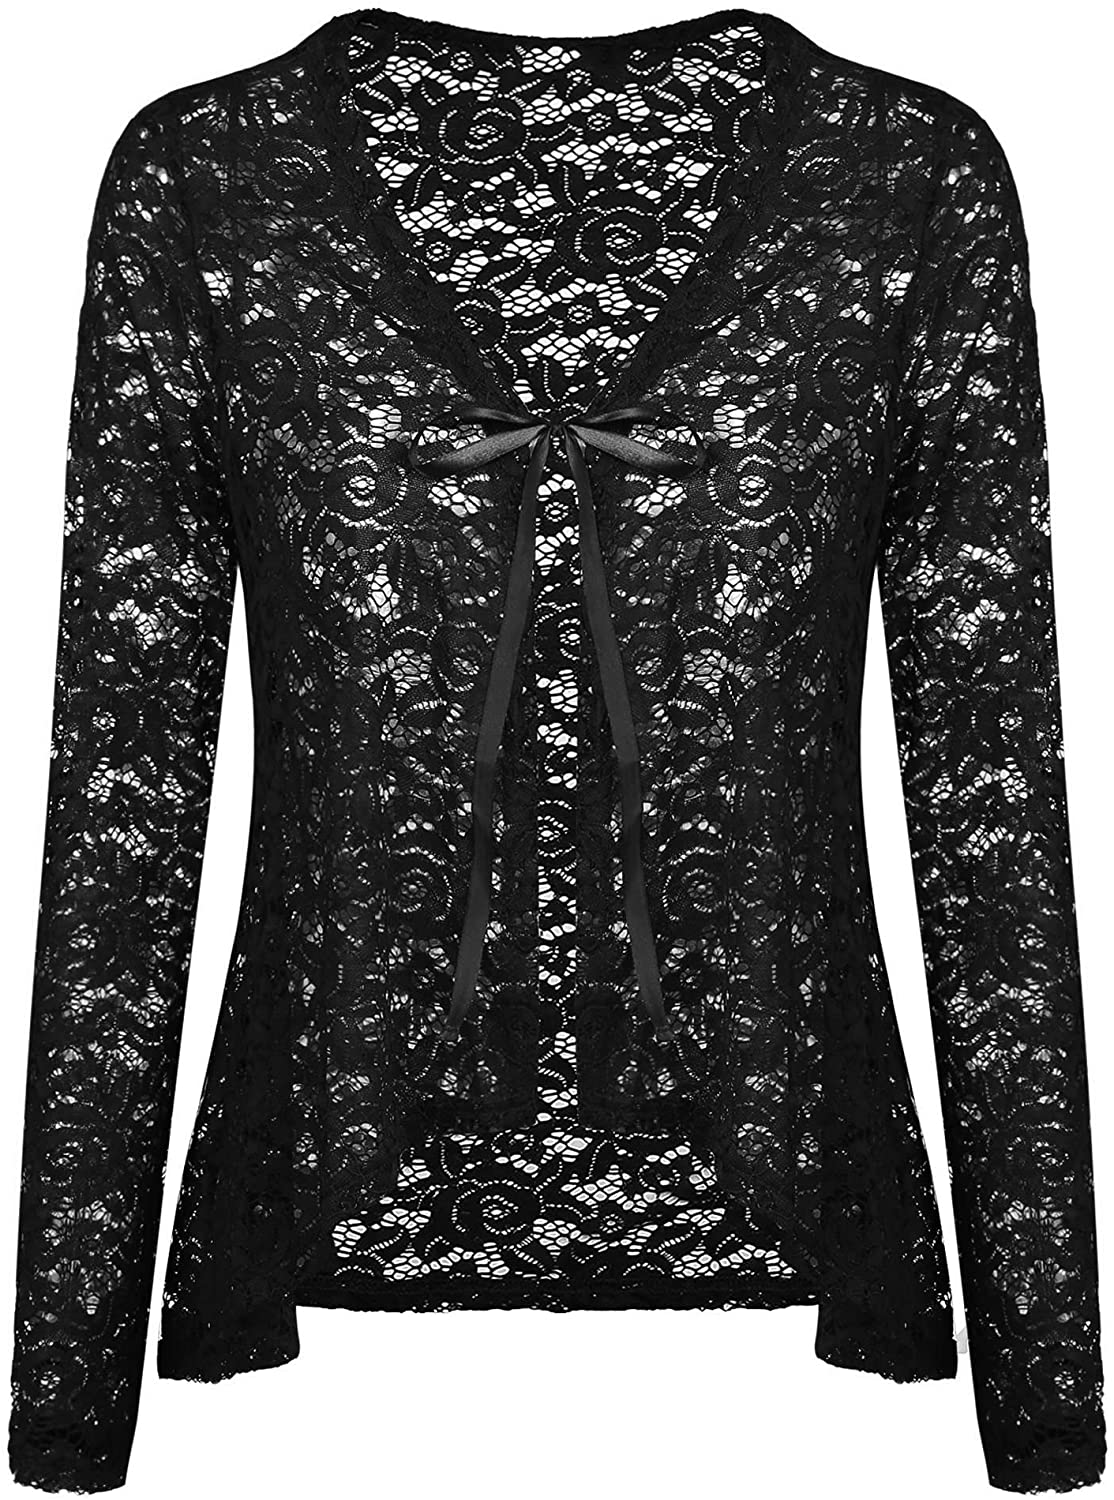 Concep Women's Lace Cardigans Long Sleeve Open Front Assymetrical Cover Up Jacket S-XXL